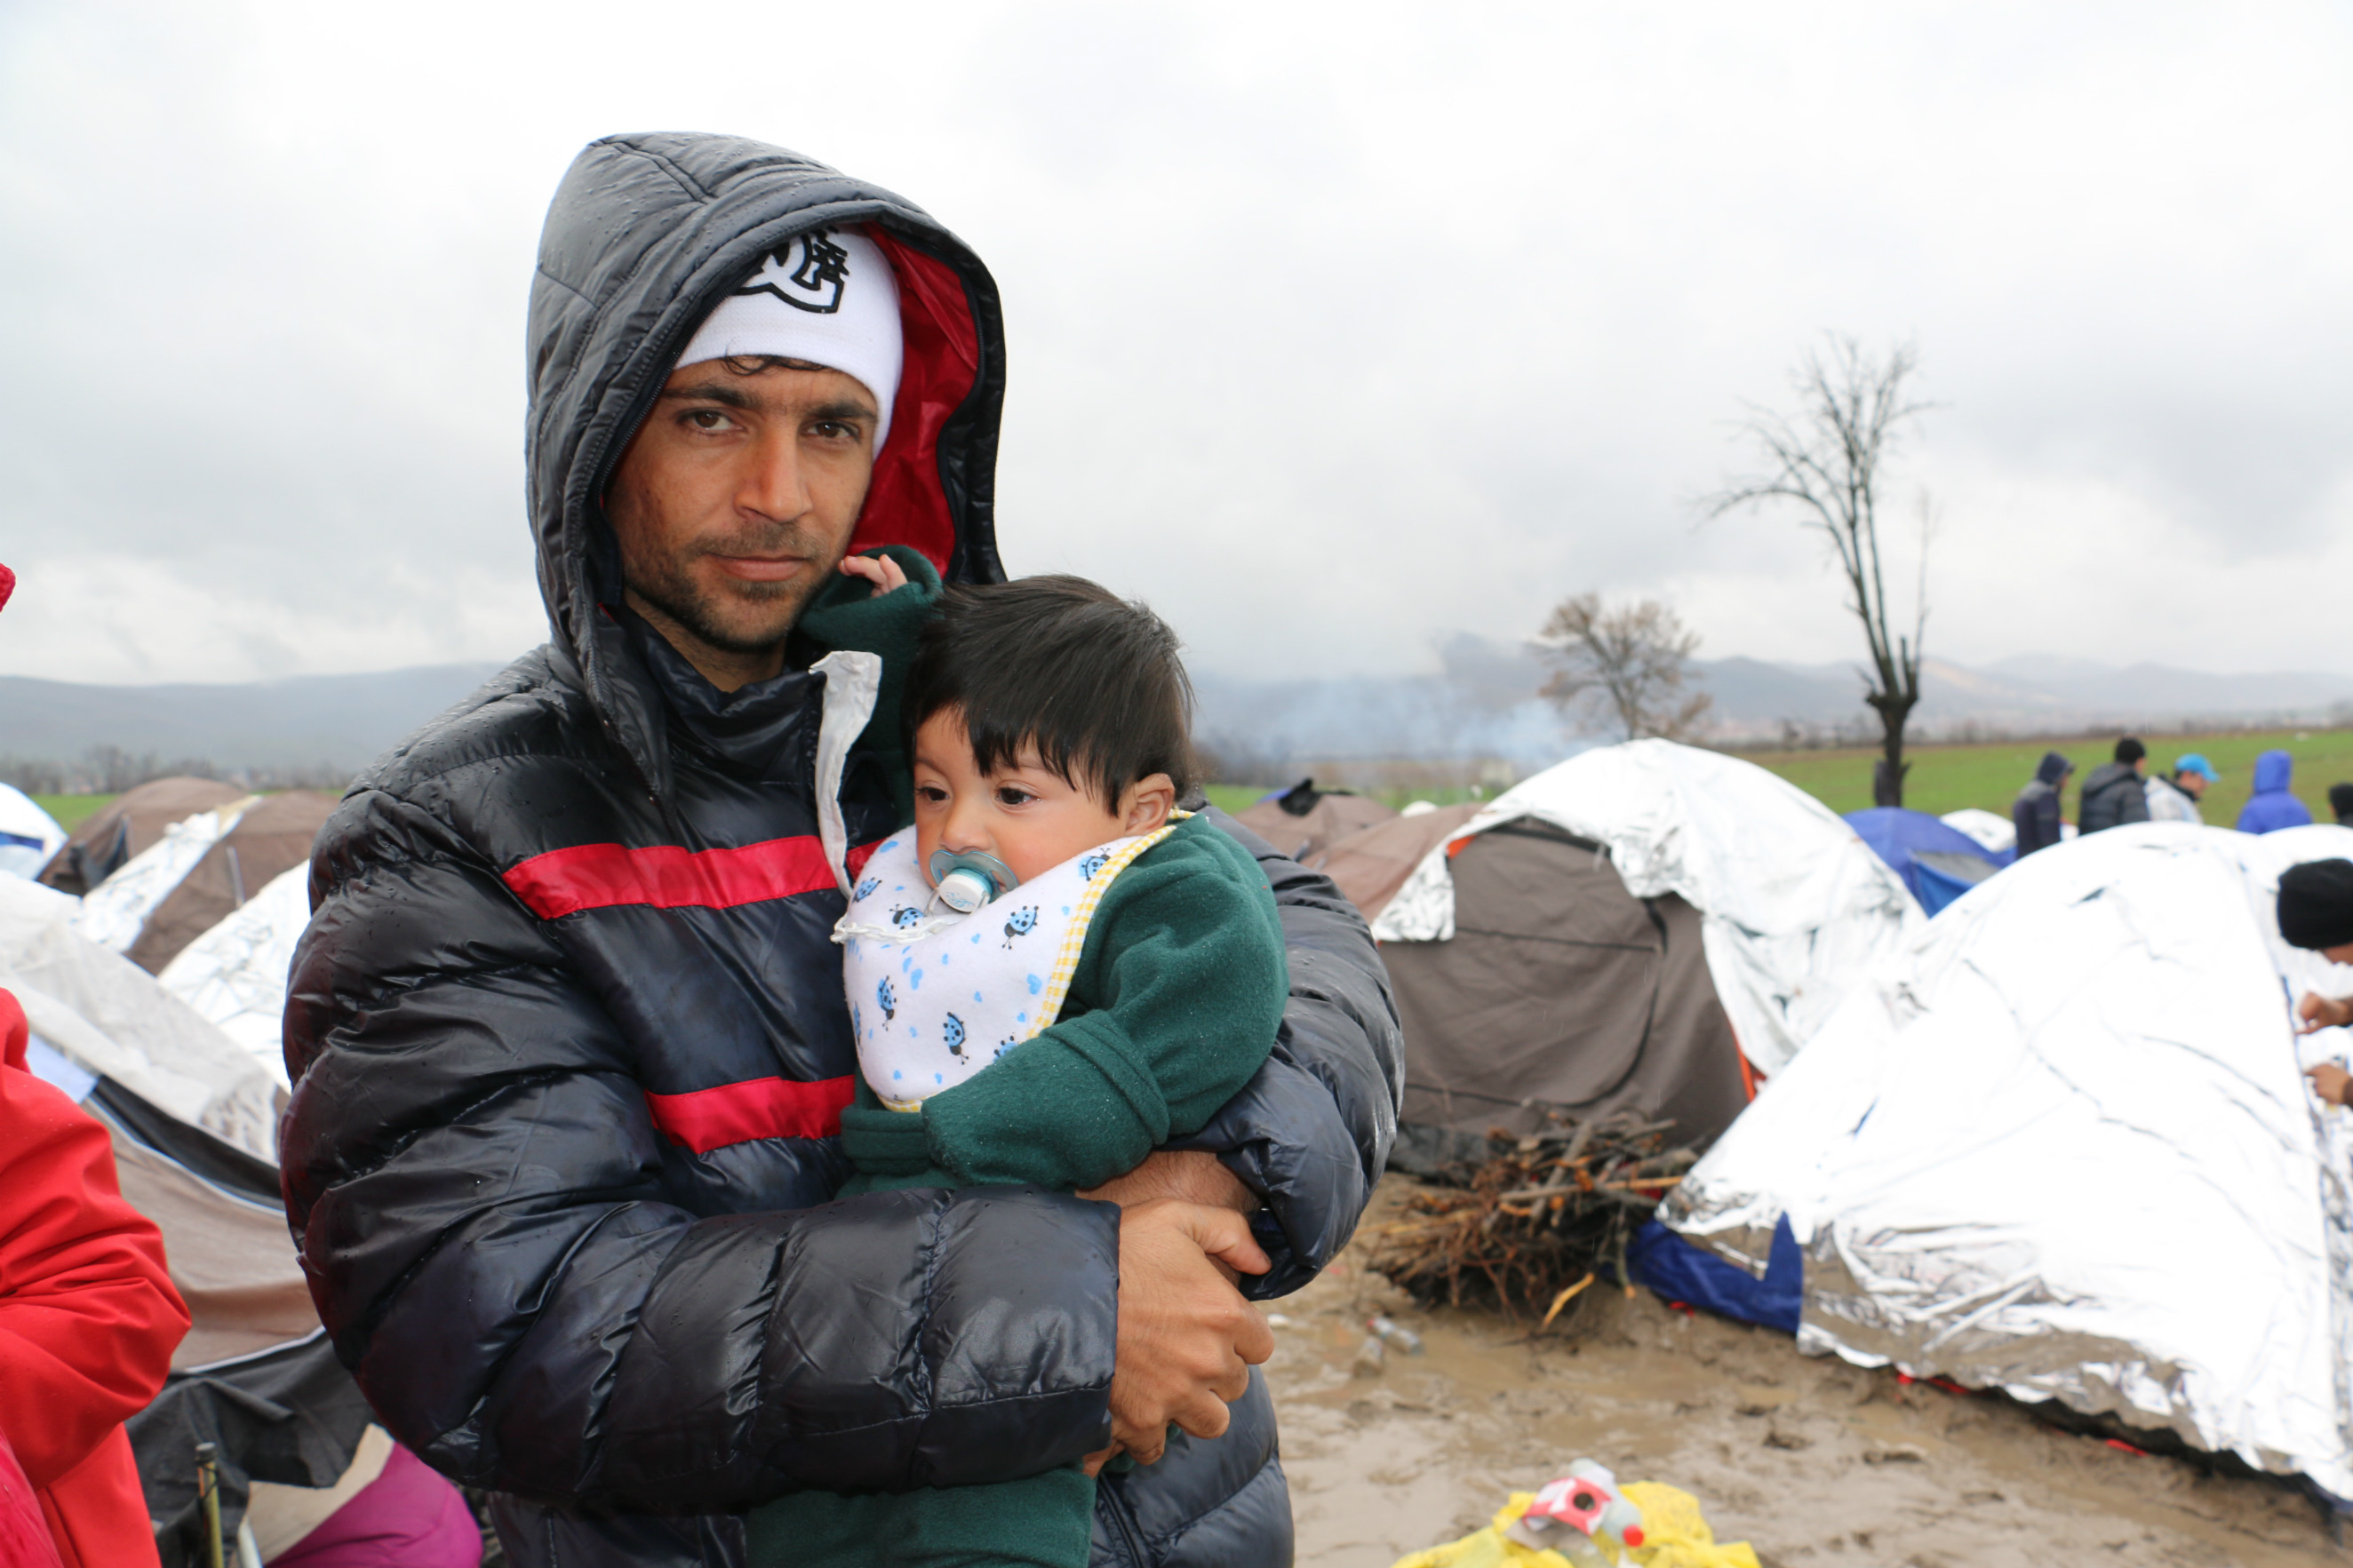 A man stands outside holding a baby.